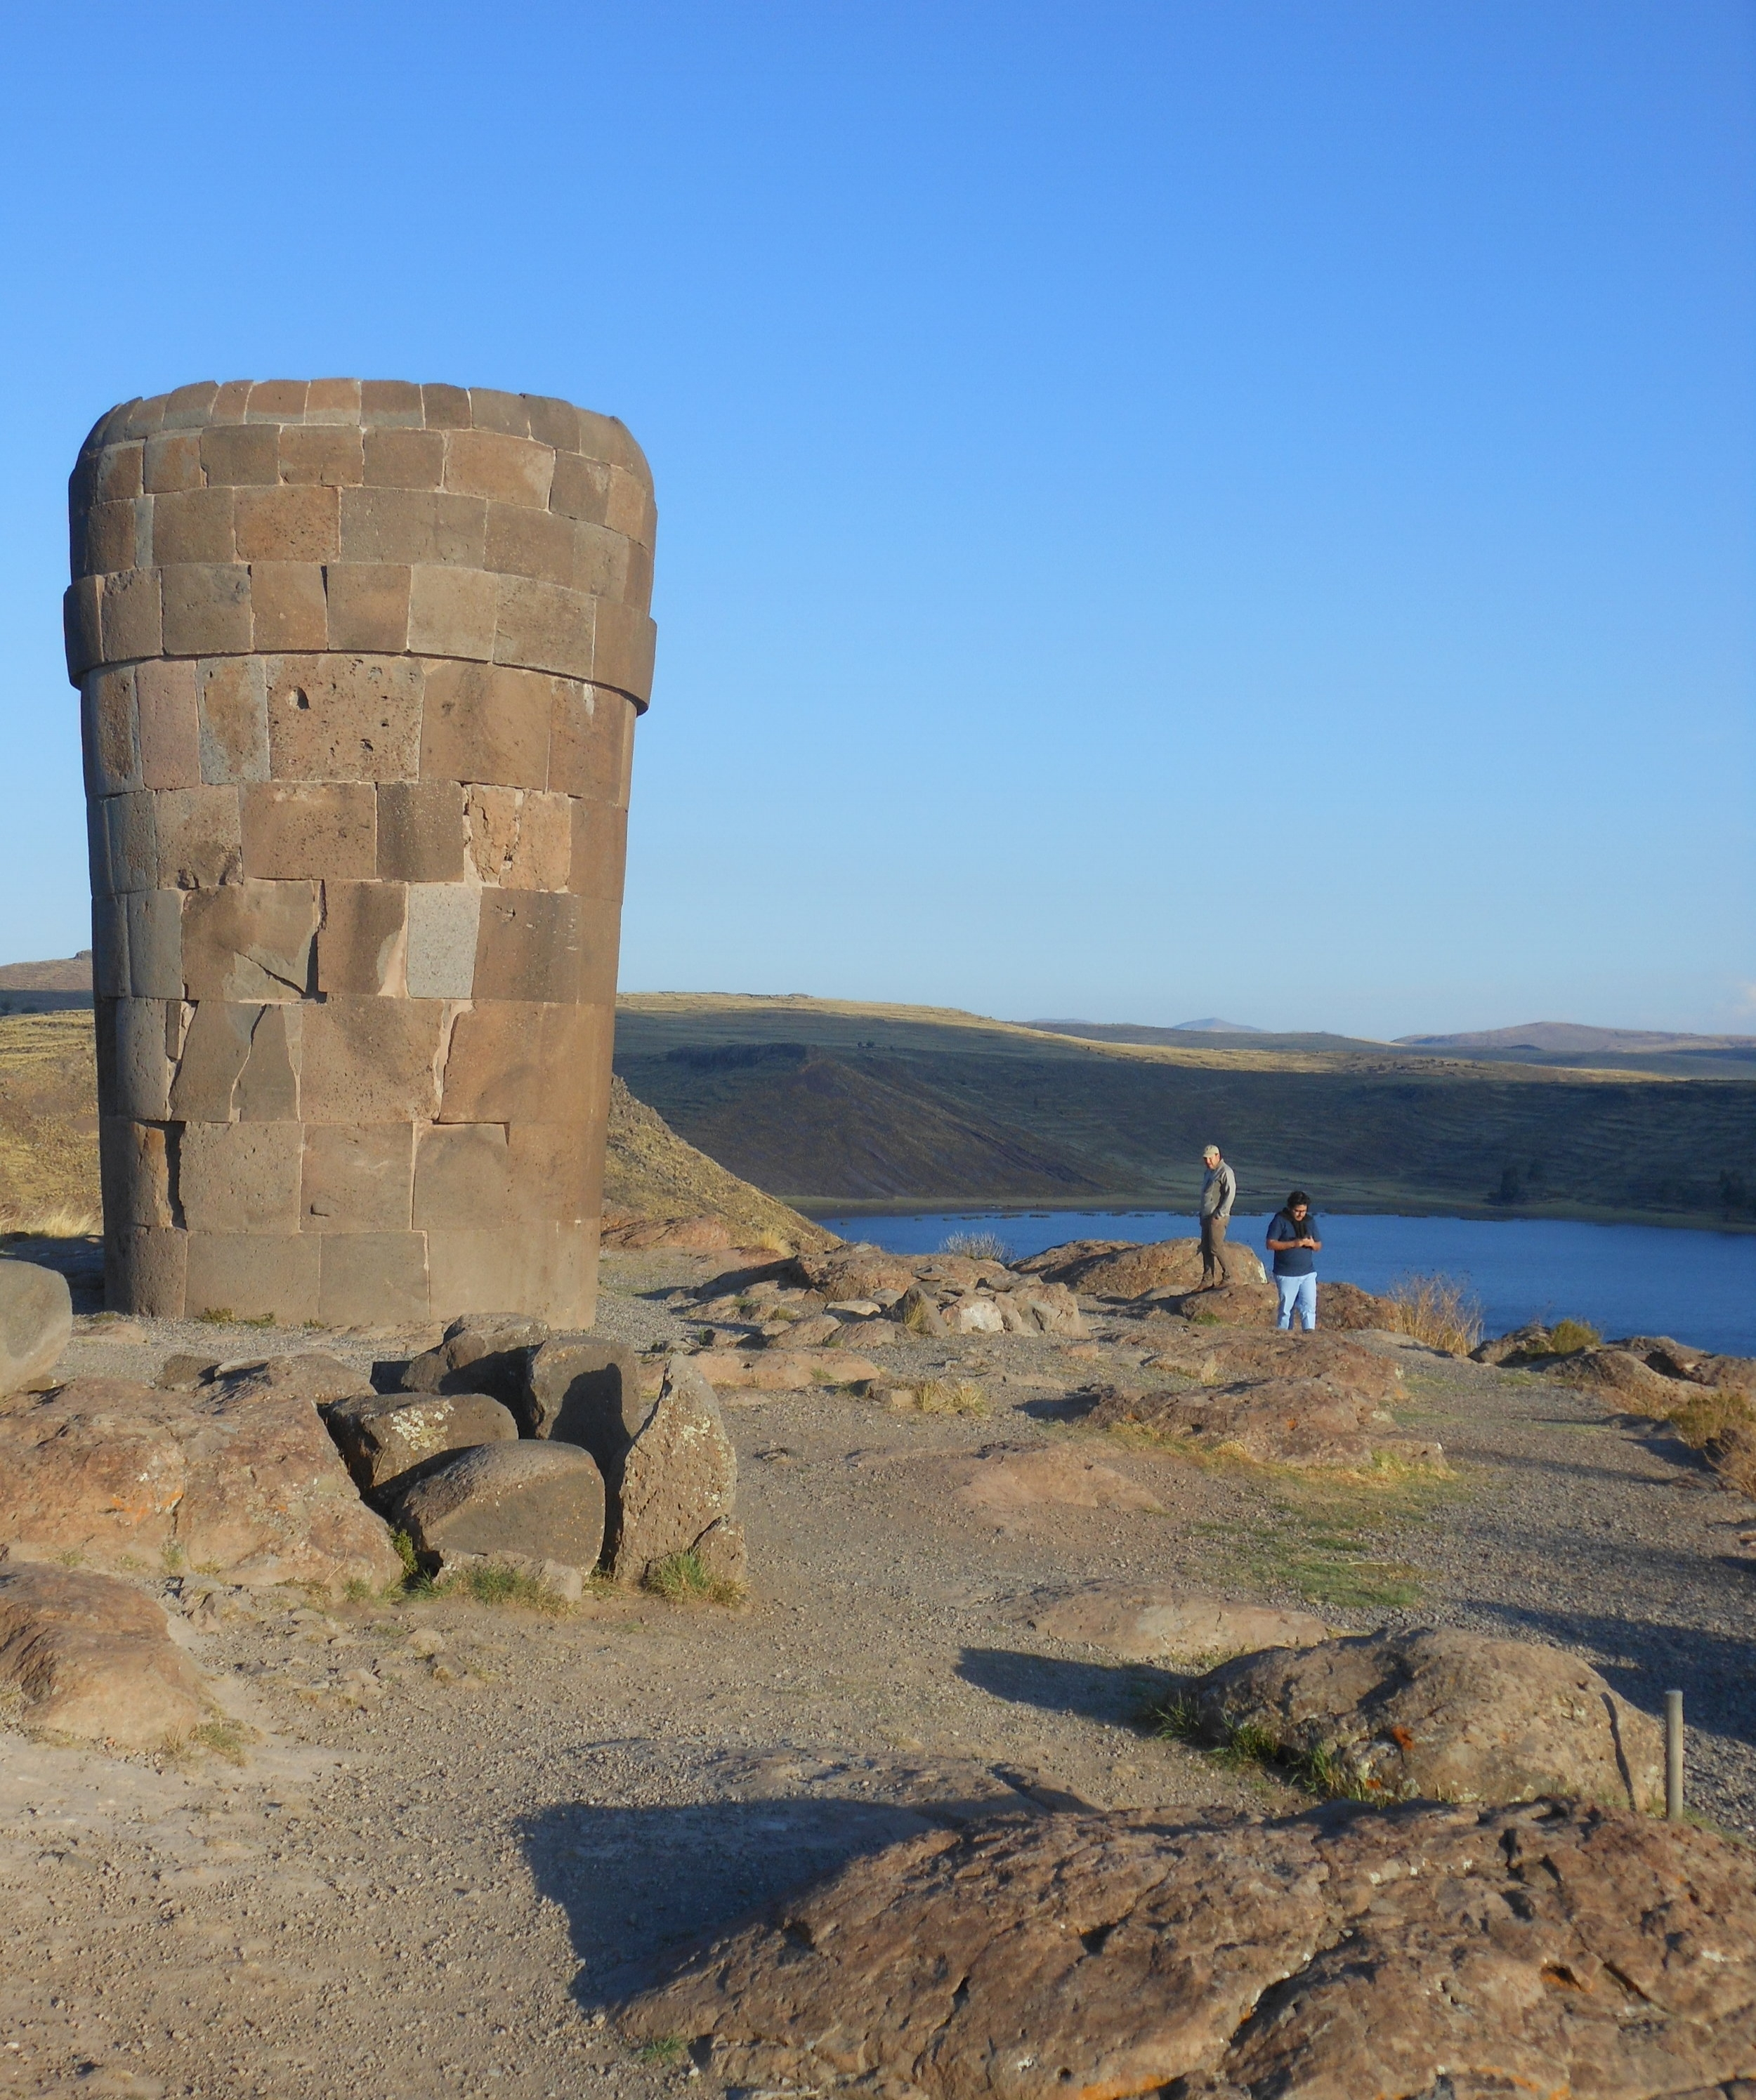 The Site   In the Andes near Lake Titicaca, Sillustani is an impressive complex of 'chullpa' tombs constructed by the Kolla culture (1200-1450 AD) which was conquered by the Incas in the 15th Century. The chullpas were the resting places of noble families, giving us a key insight into power and family life in this period. Sillustani is the the best preserved and most important collection of these tombs in Peru.